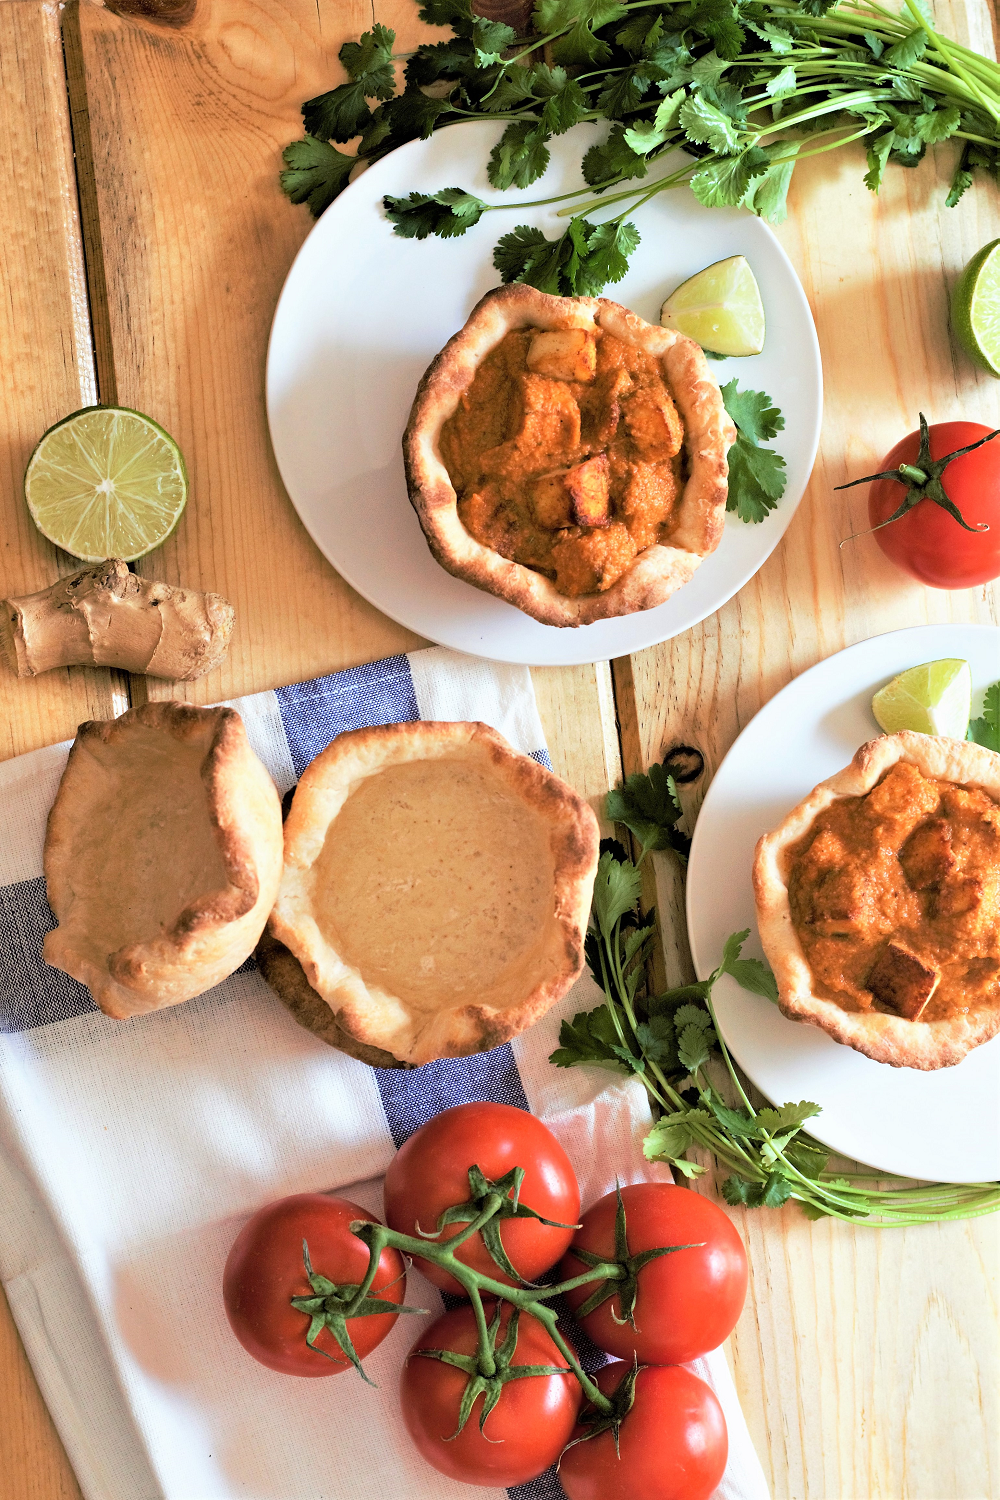 My favorite rich, creamy butter masala trades the usual chicken for fresh paneer cheese! Serve it up in a naan bread bowl for pure comfort food bliss.